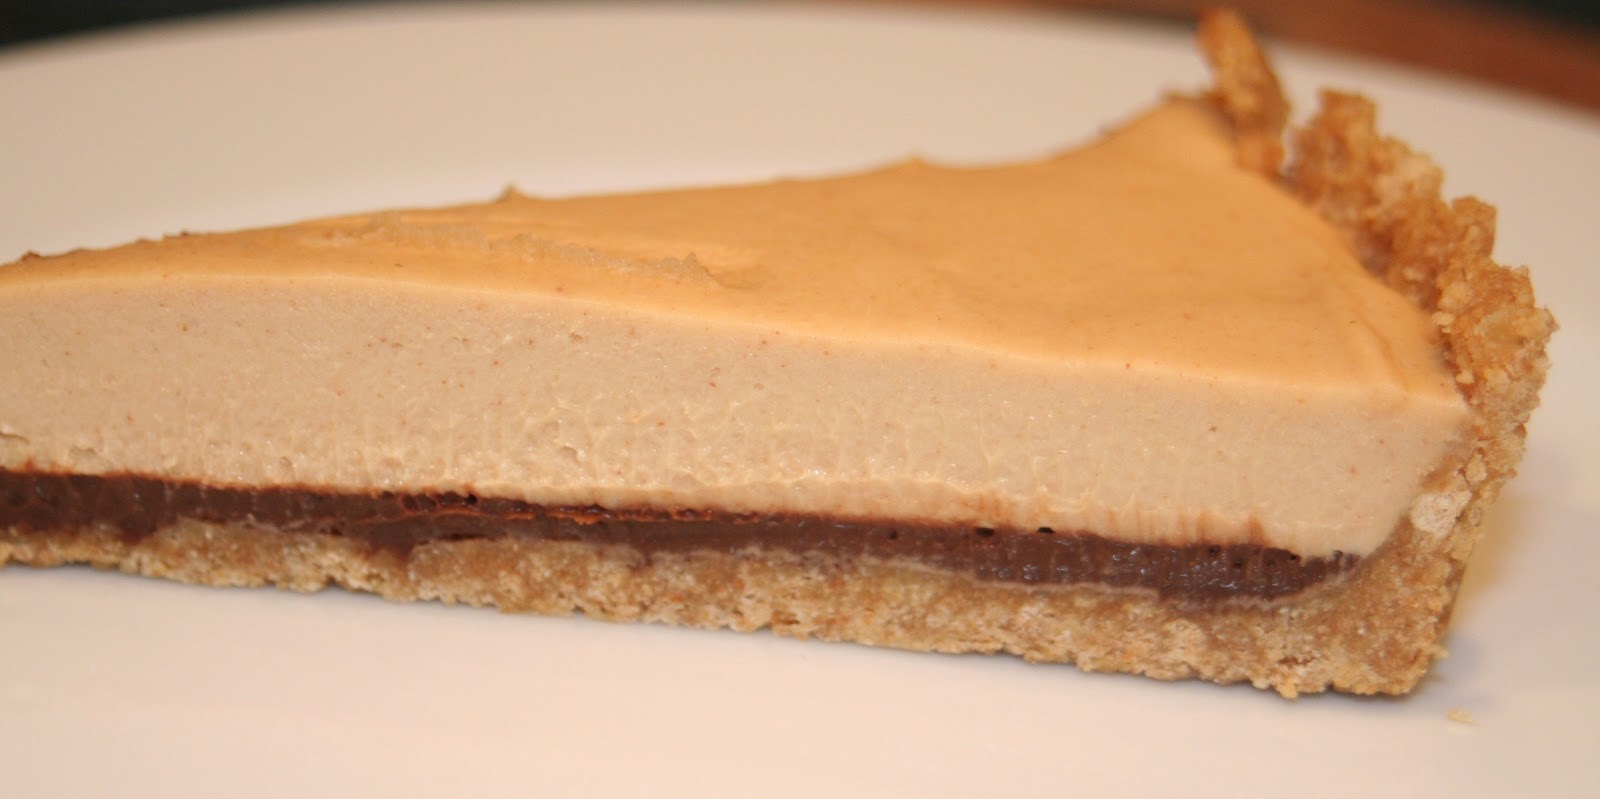 Cooking in Kirkland: Creamy Peanut Butter Tart